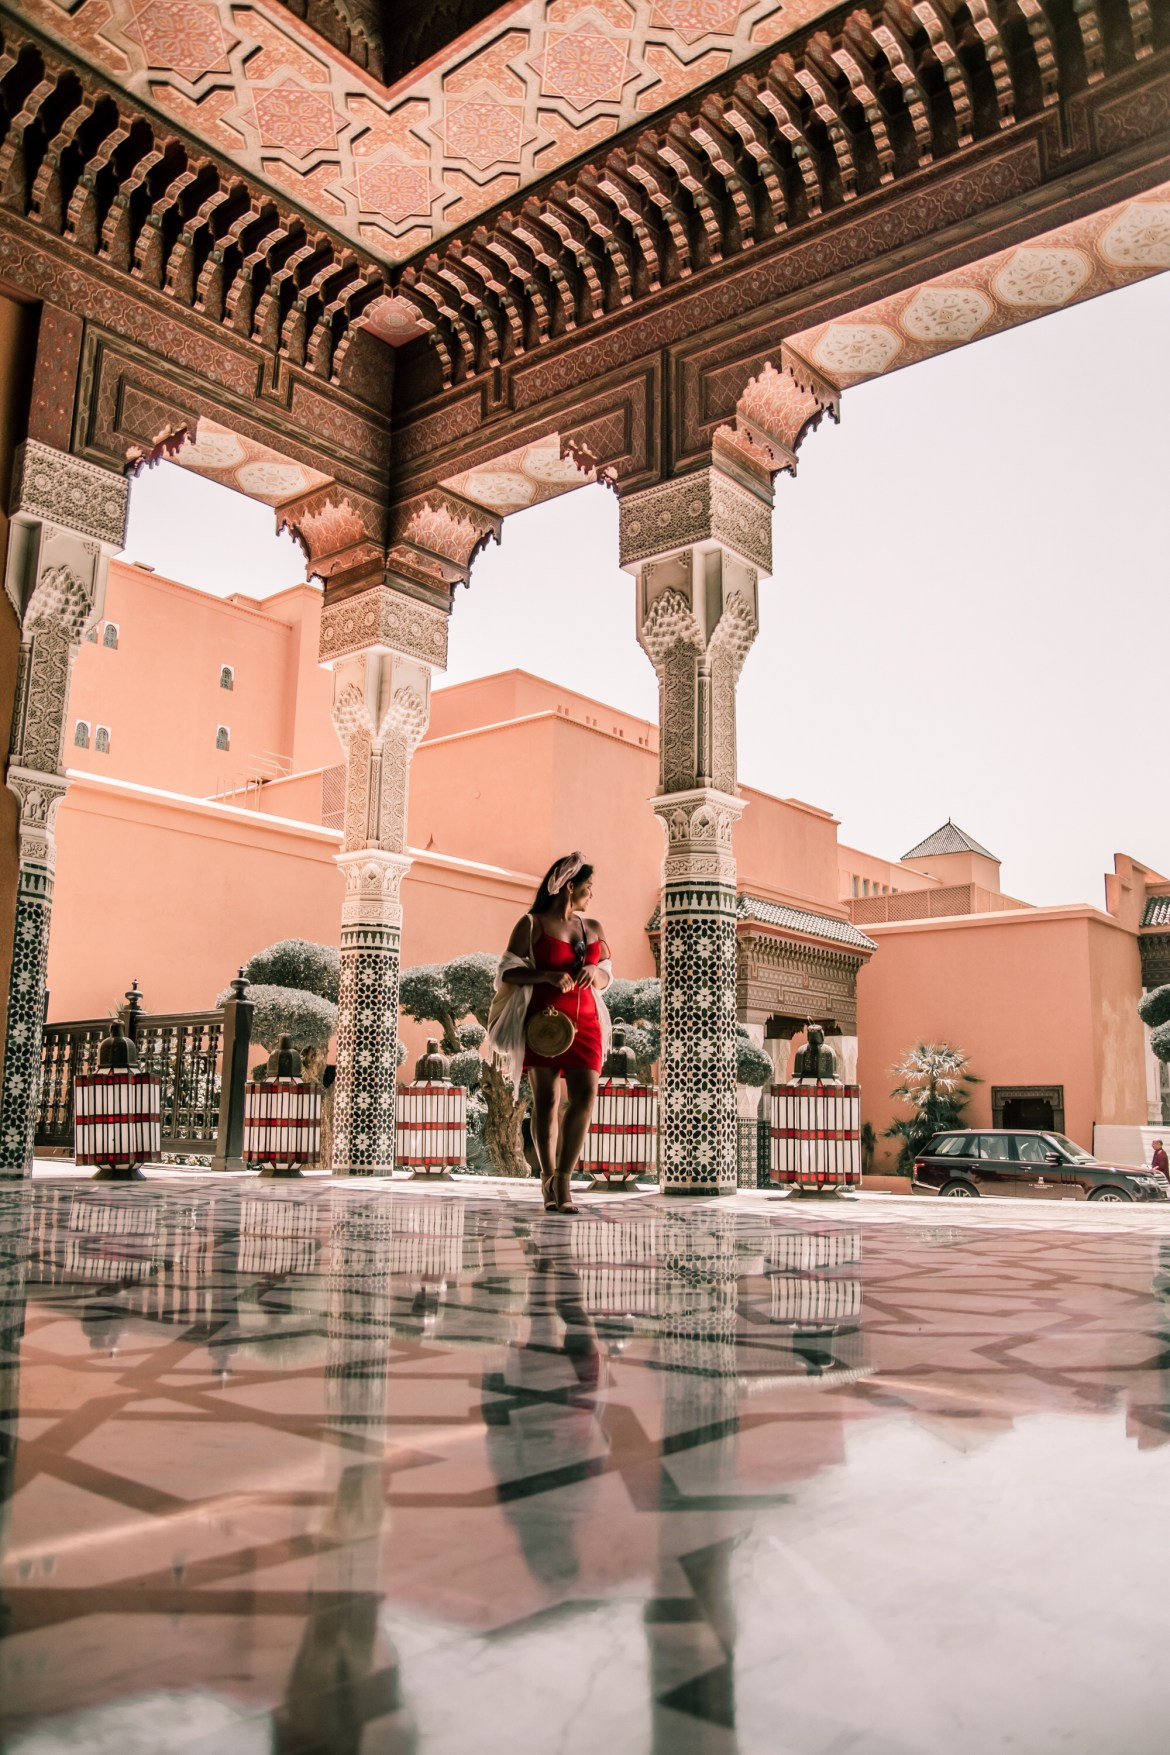 What Color Shoes To Wear With A Red Dress How To Wear A Summer Red Dress What To Wear In Morocco Marrakech Paris Chic Style 11